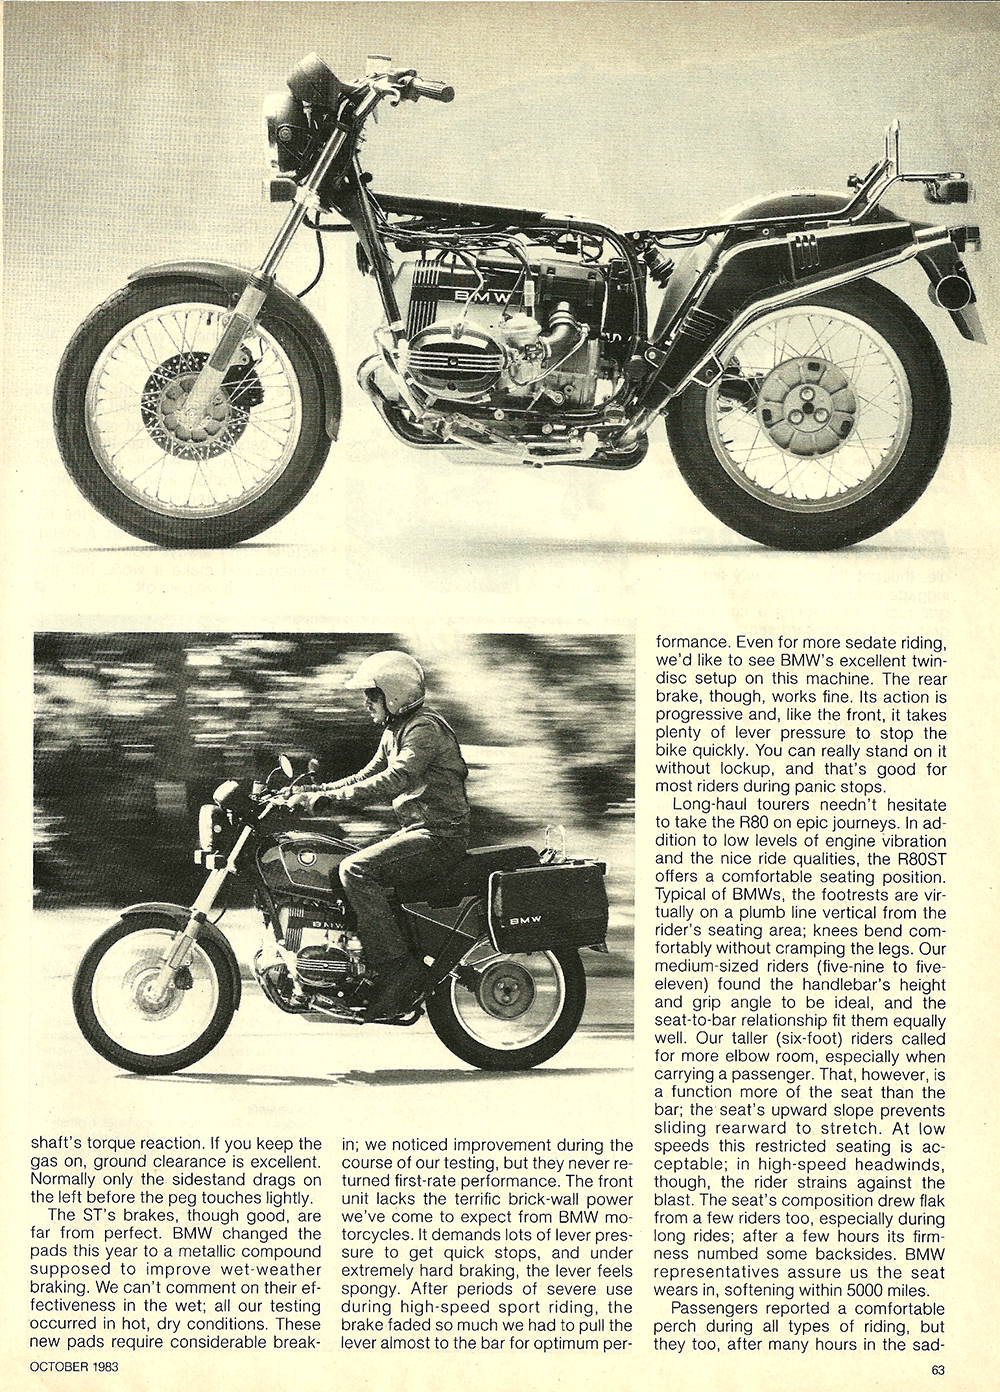 1983 BMW R80ST road test 5.jpg